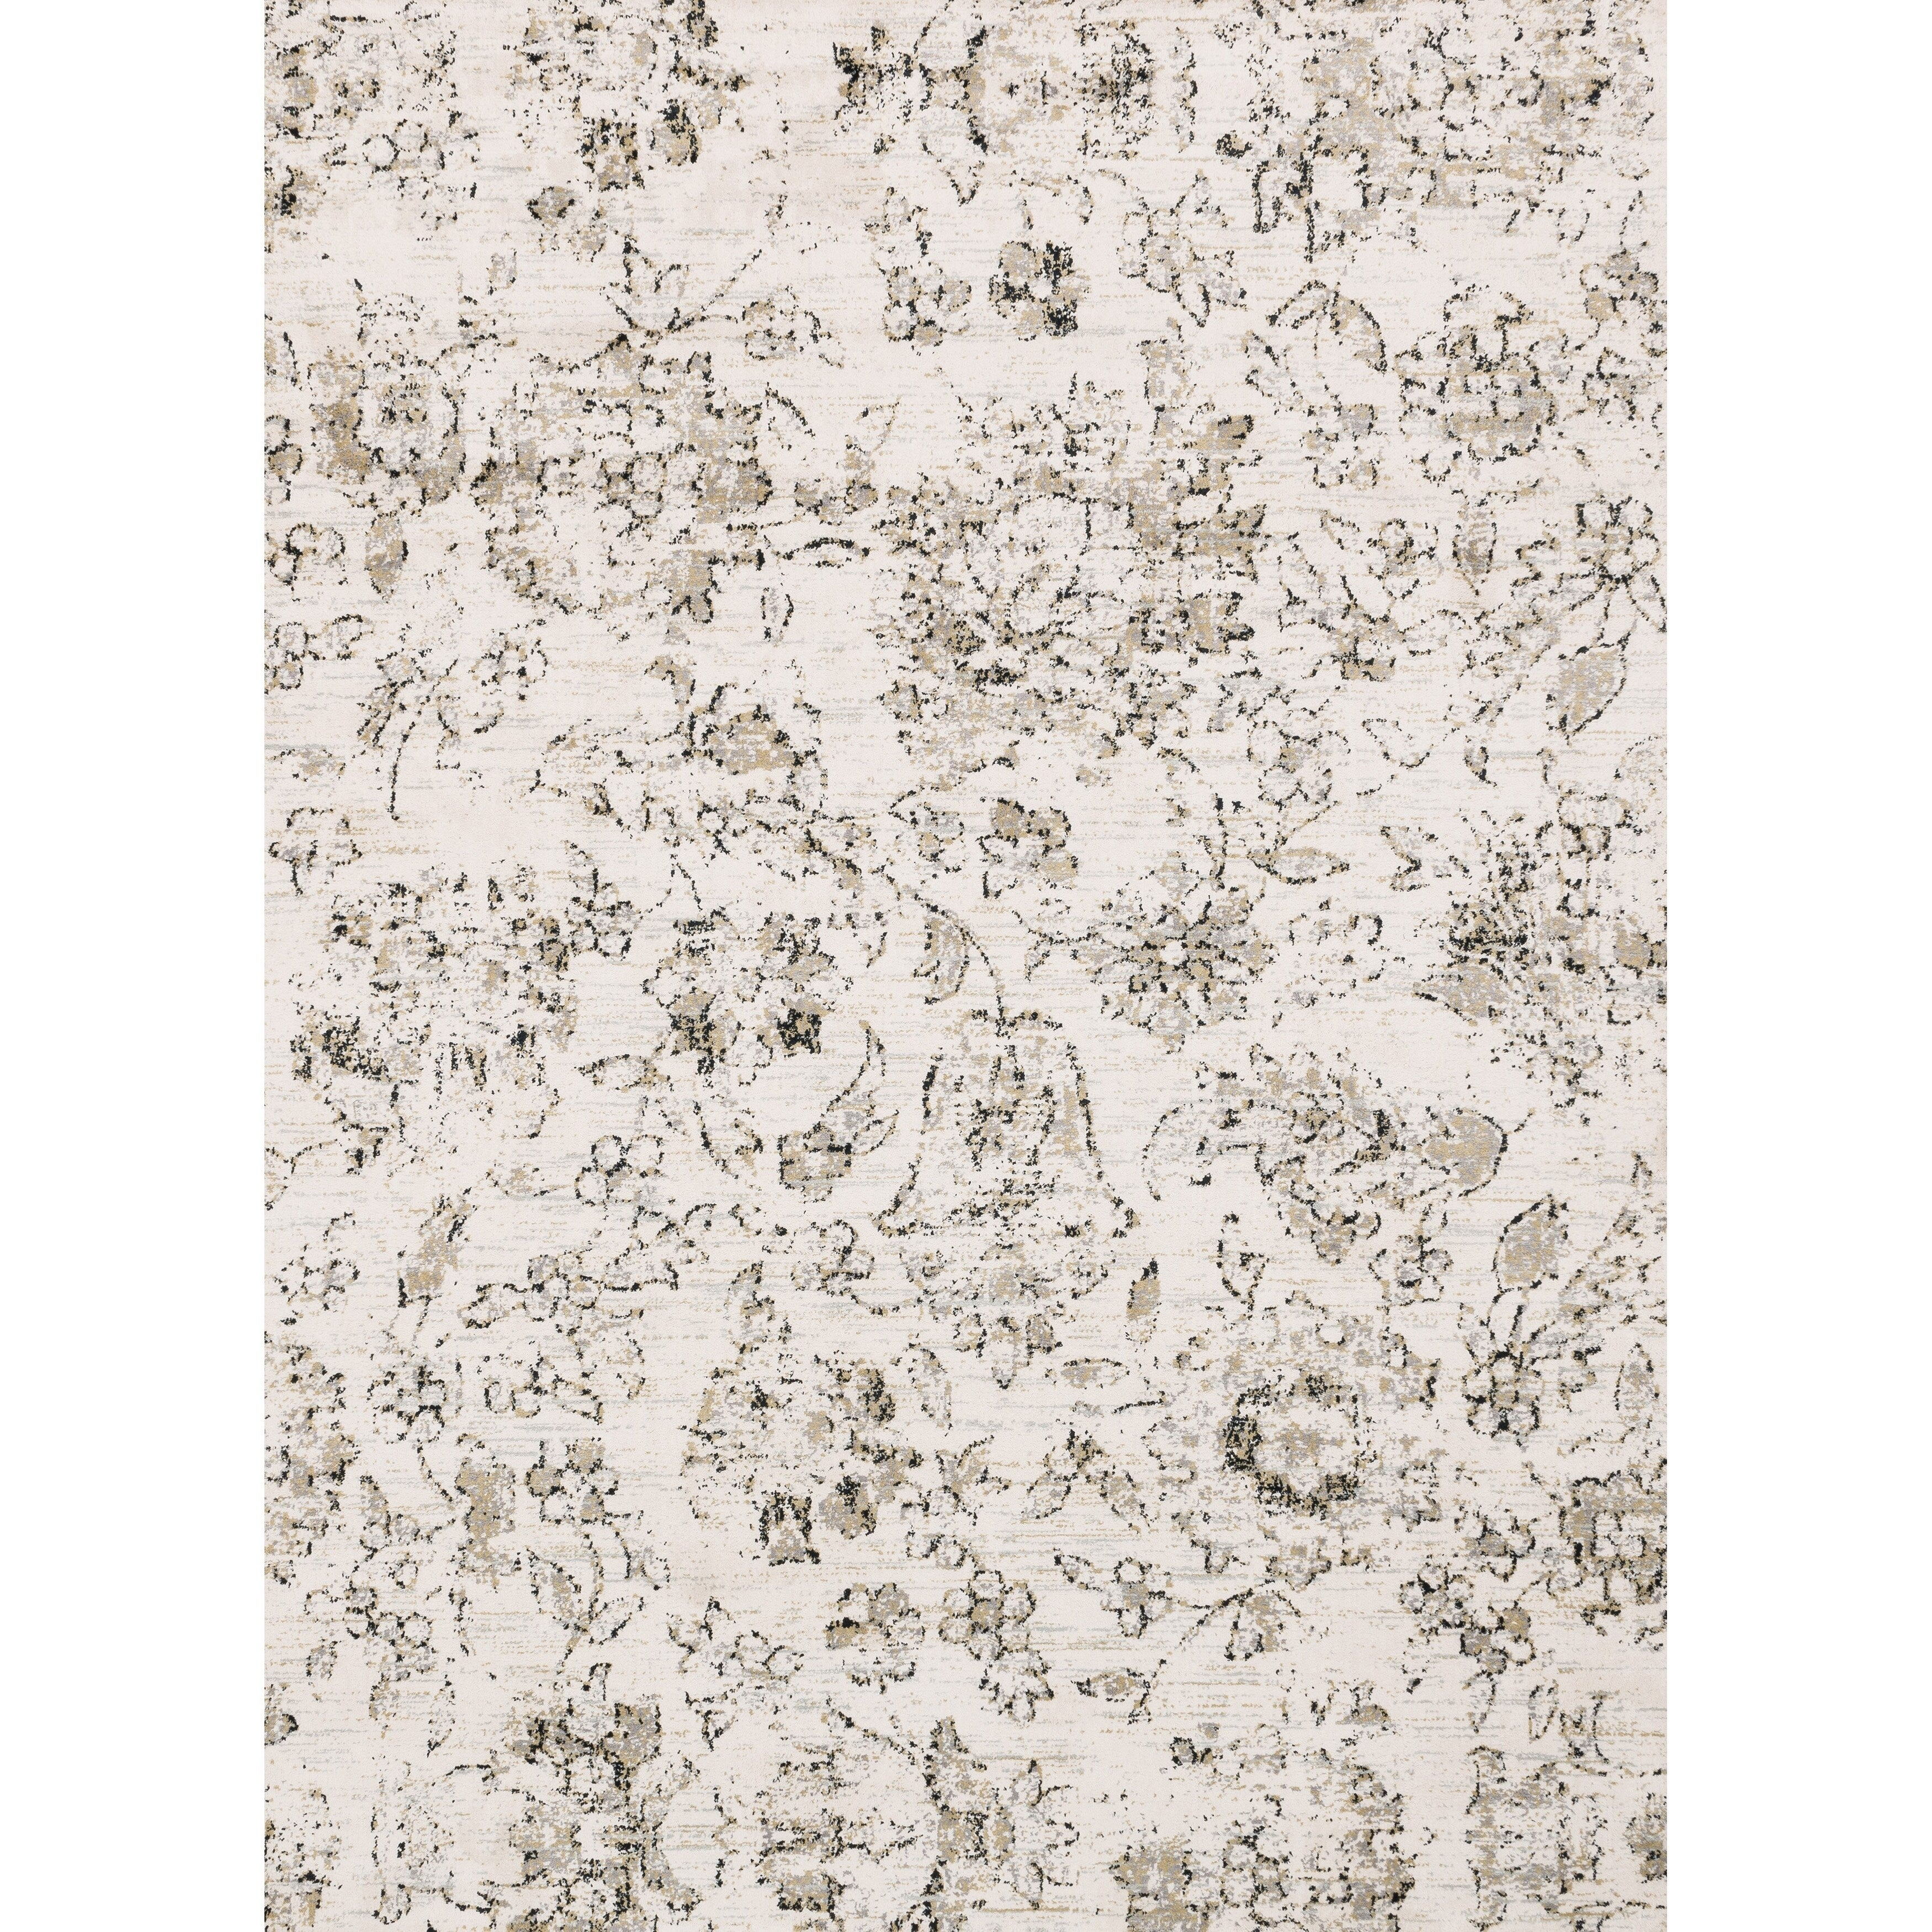 Shop Alexander Home Verona Shabby Chic Botanical And Floral Rug On Sale Overstock 12546845 3 9 X 5 9 Ivory Neutral